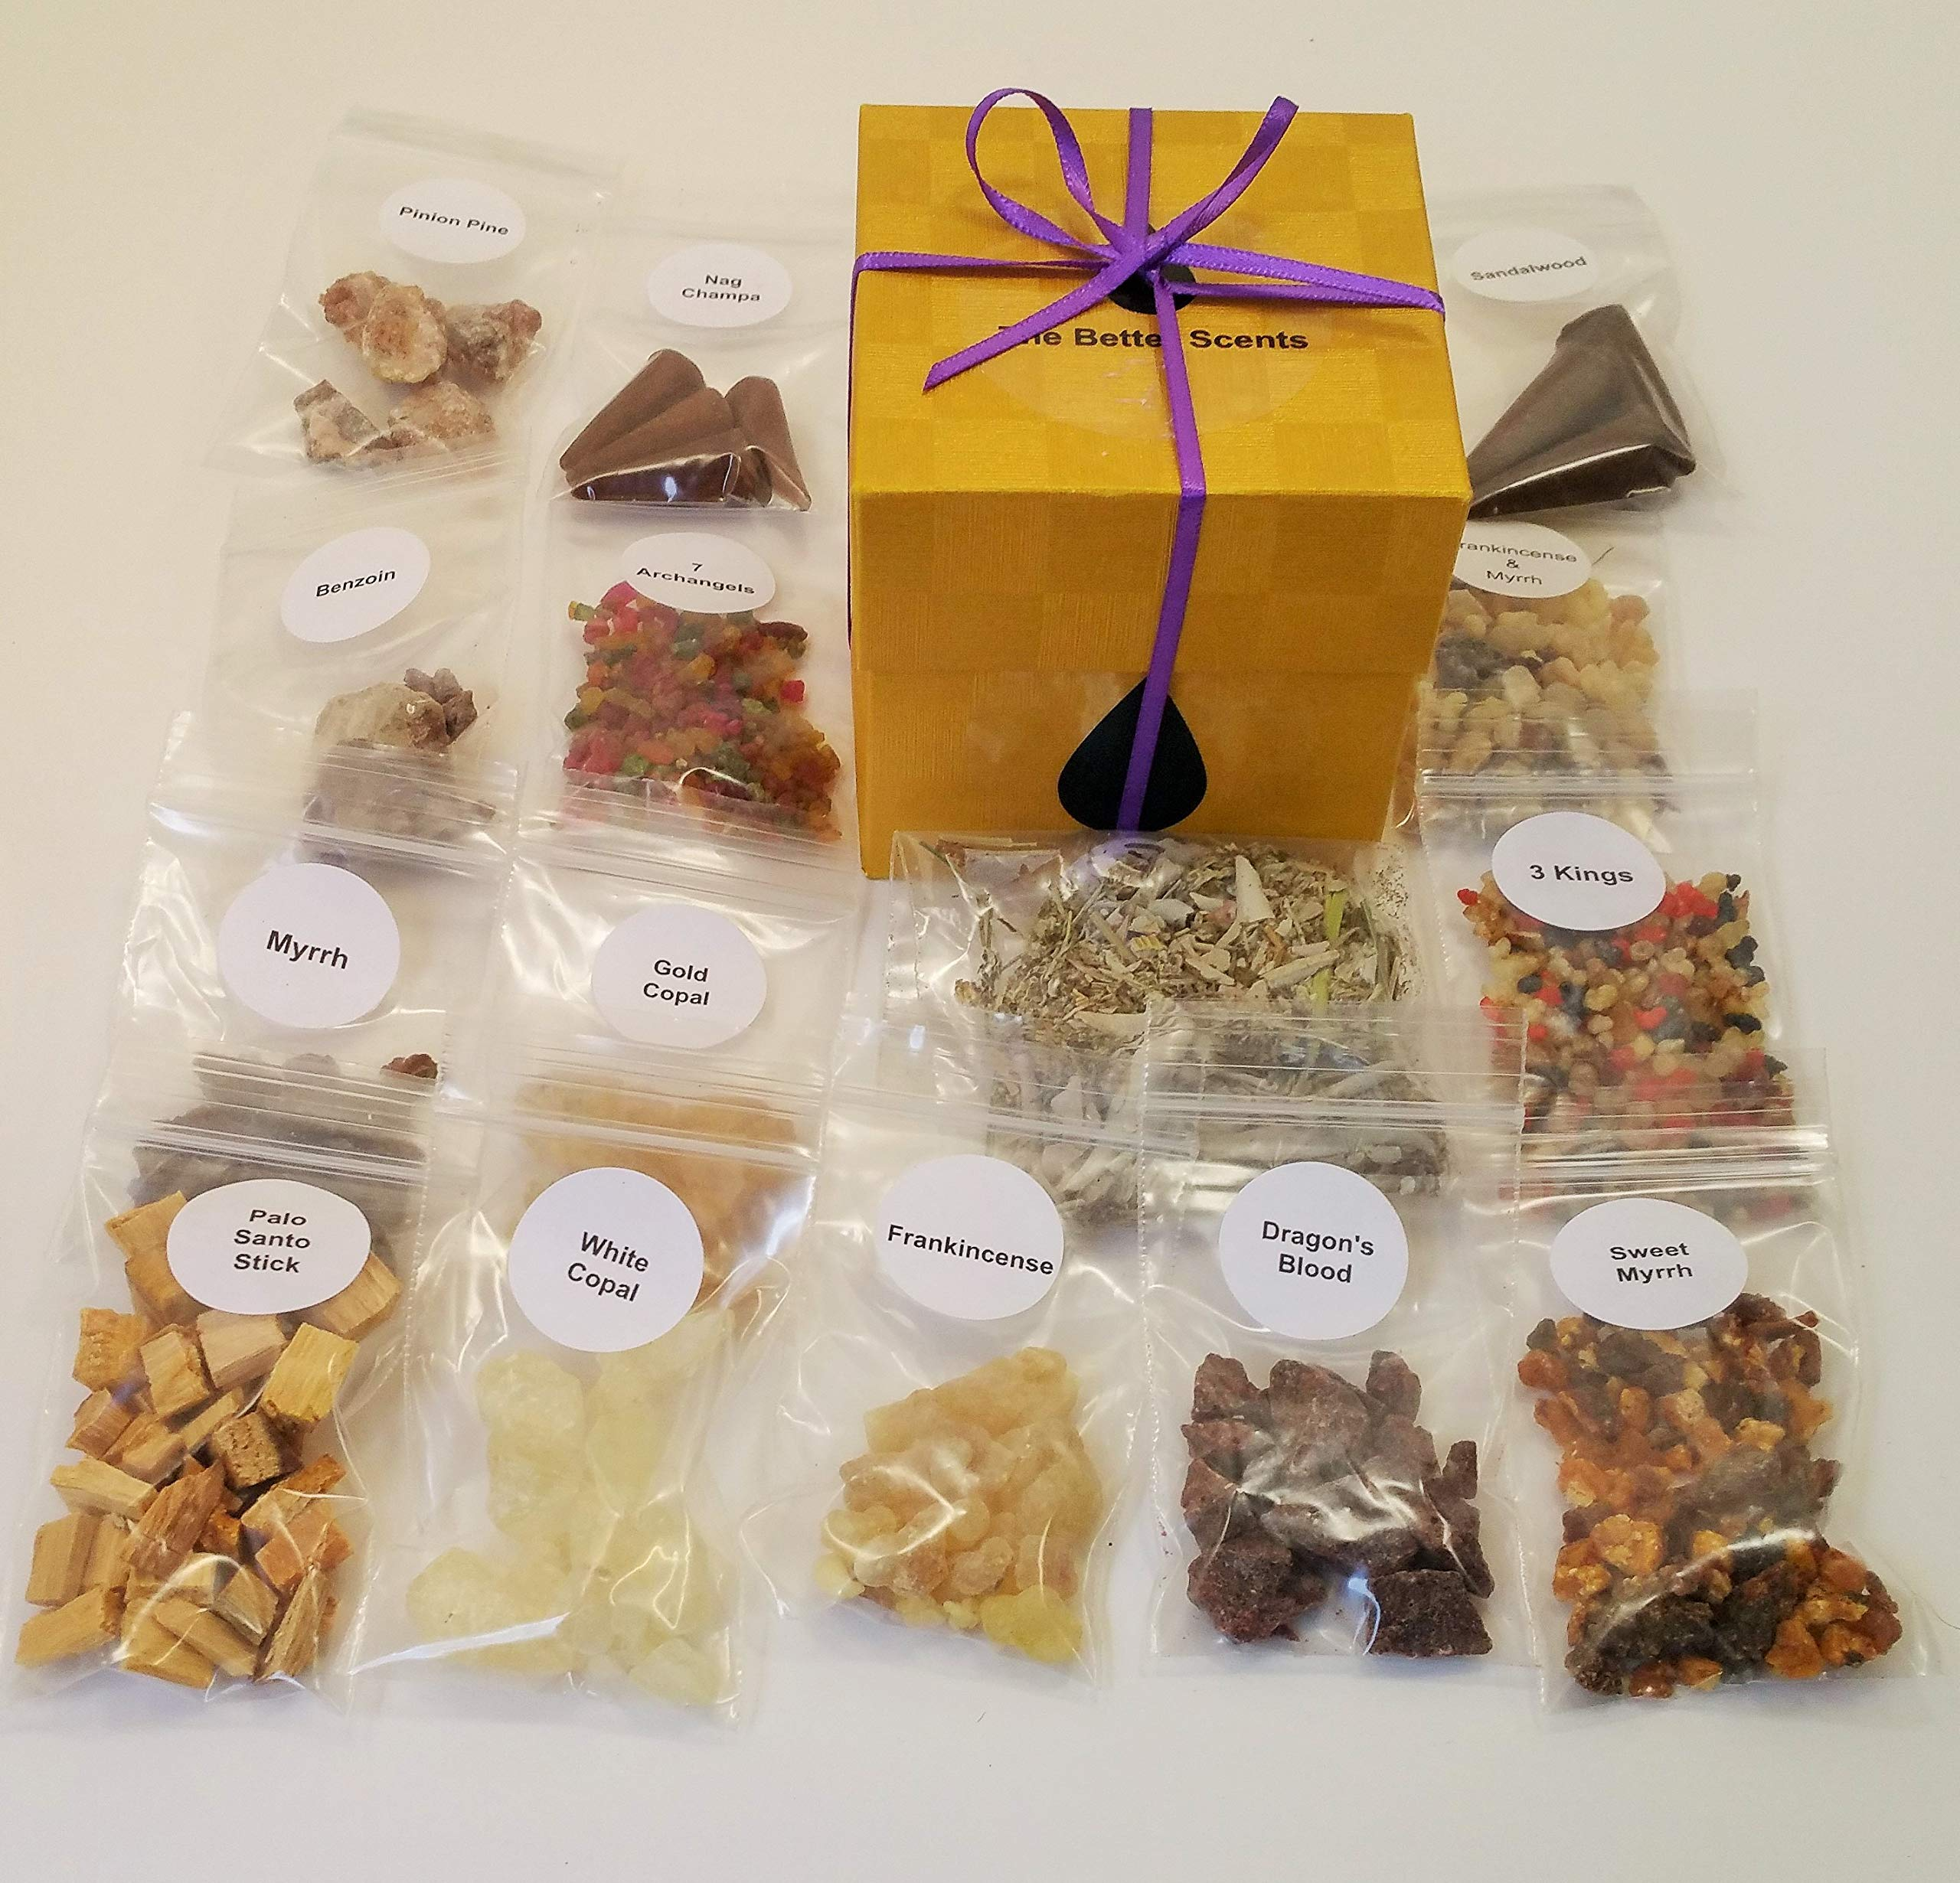 Resin Incense Variety Sampler Set- 16 Different scents 1/4 oz Samplers of resins- Herbs - Wood - Quality Made Cones. Beautifully Gift Boxed. All Natural Ingredients. The Best selections no fillers by The Better Scents (Image #2)